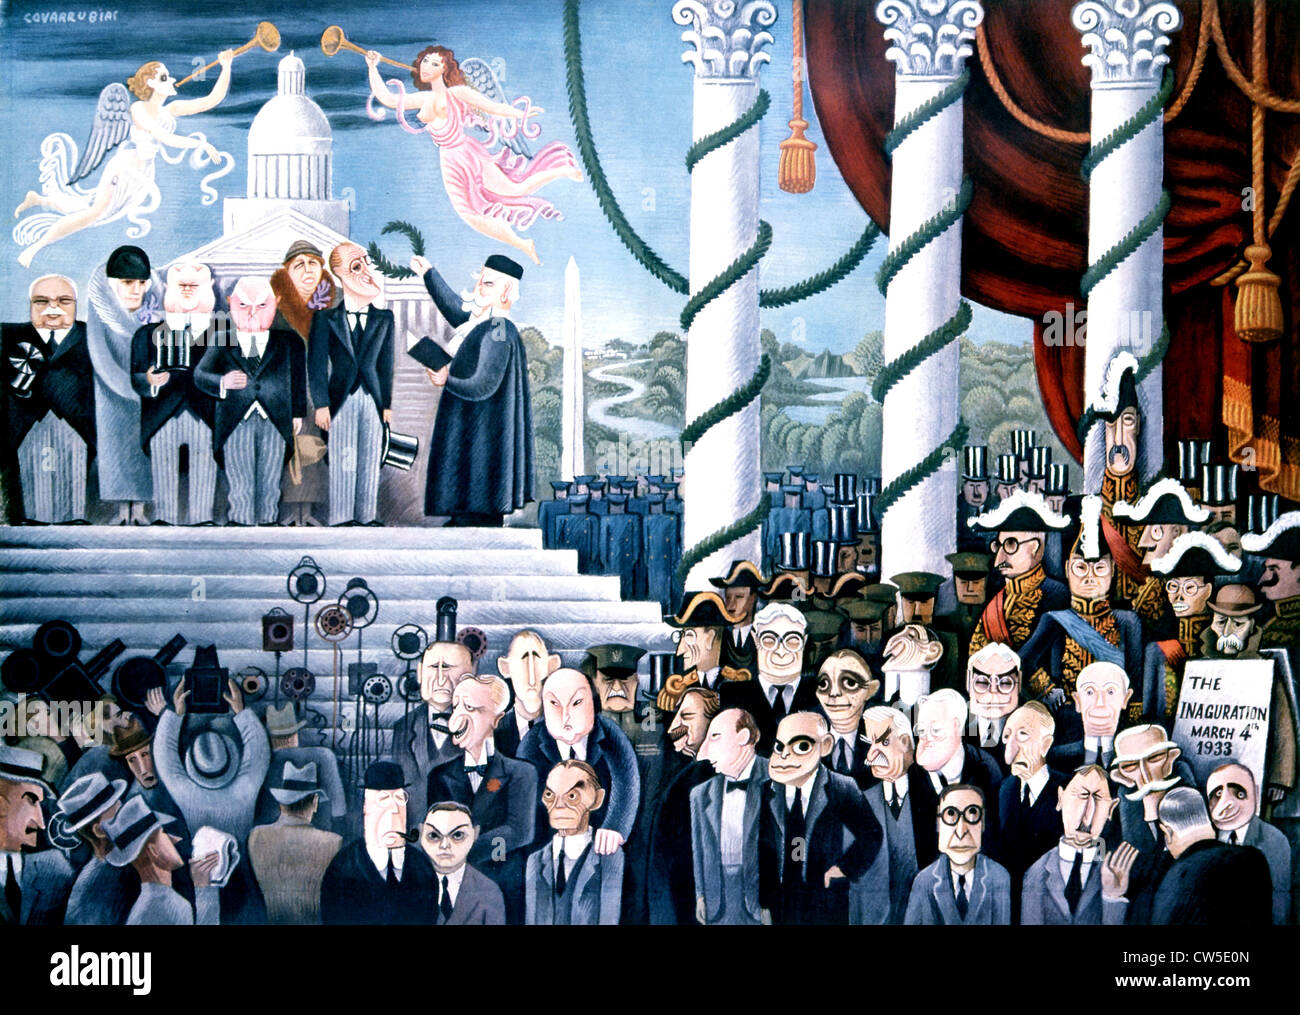 Newly elected President Franklin D Roosevelt appearing on steps Capitole Caricature Miguel Covarrubias published - Stock Image